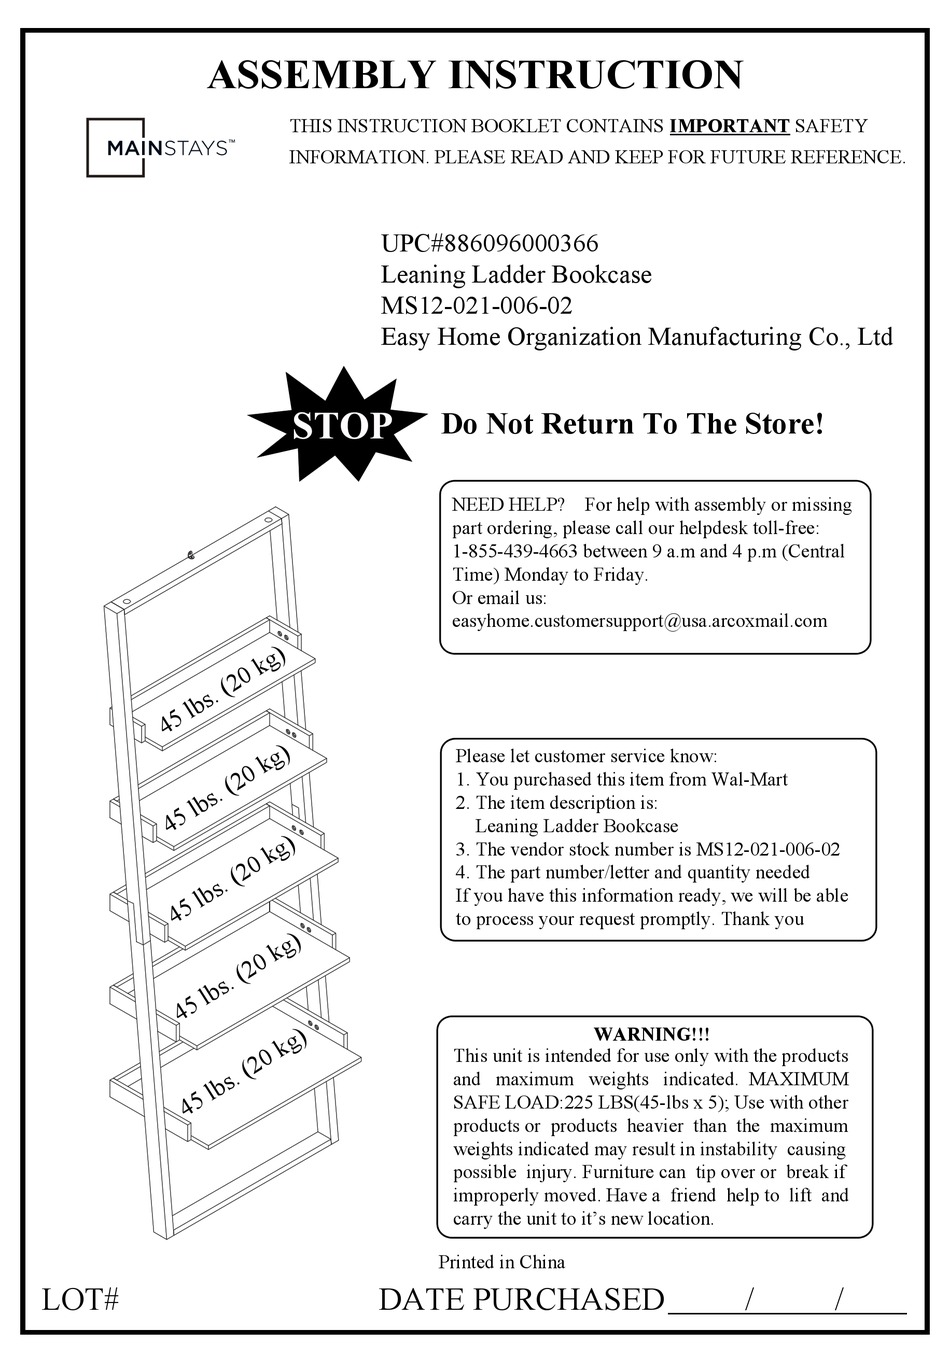 Assembly Instructions Mainstays Bathroom Space Saver Instructions Pdf